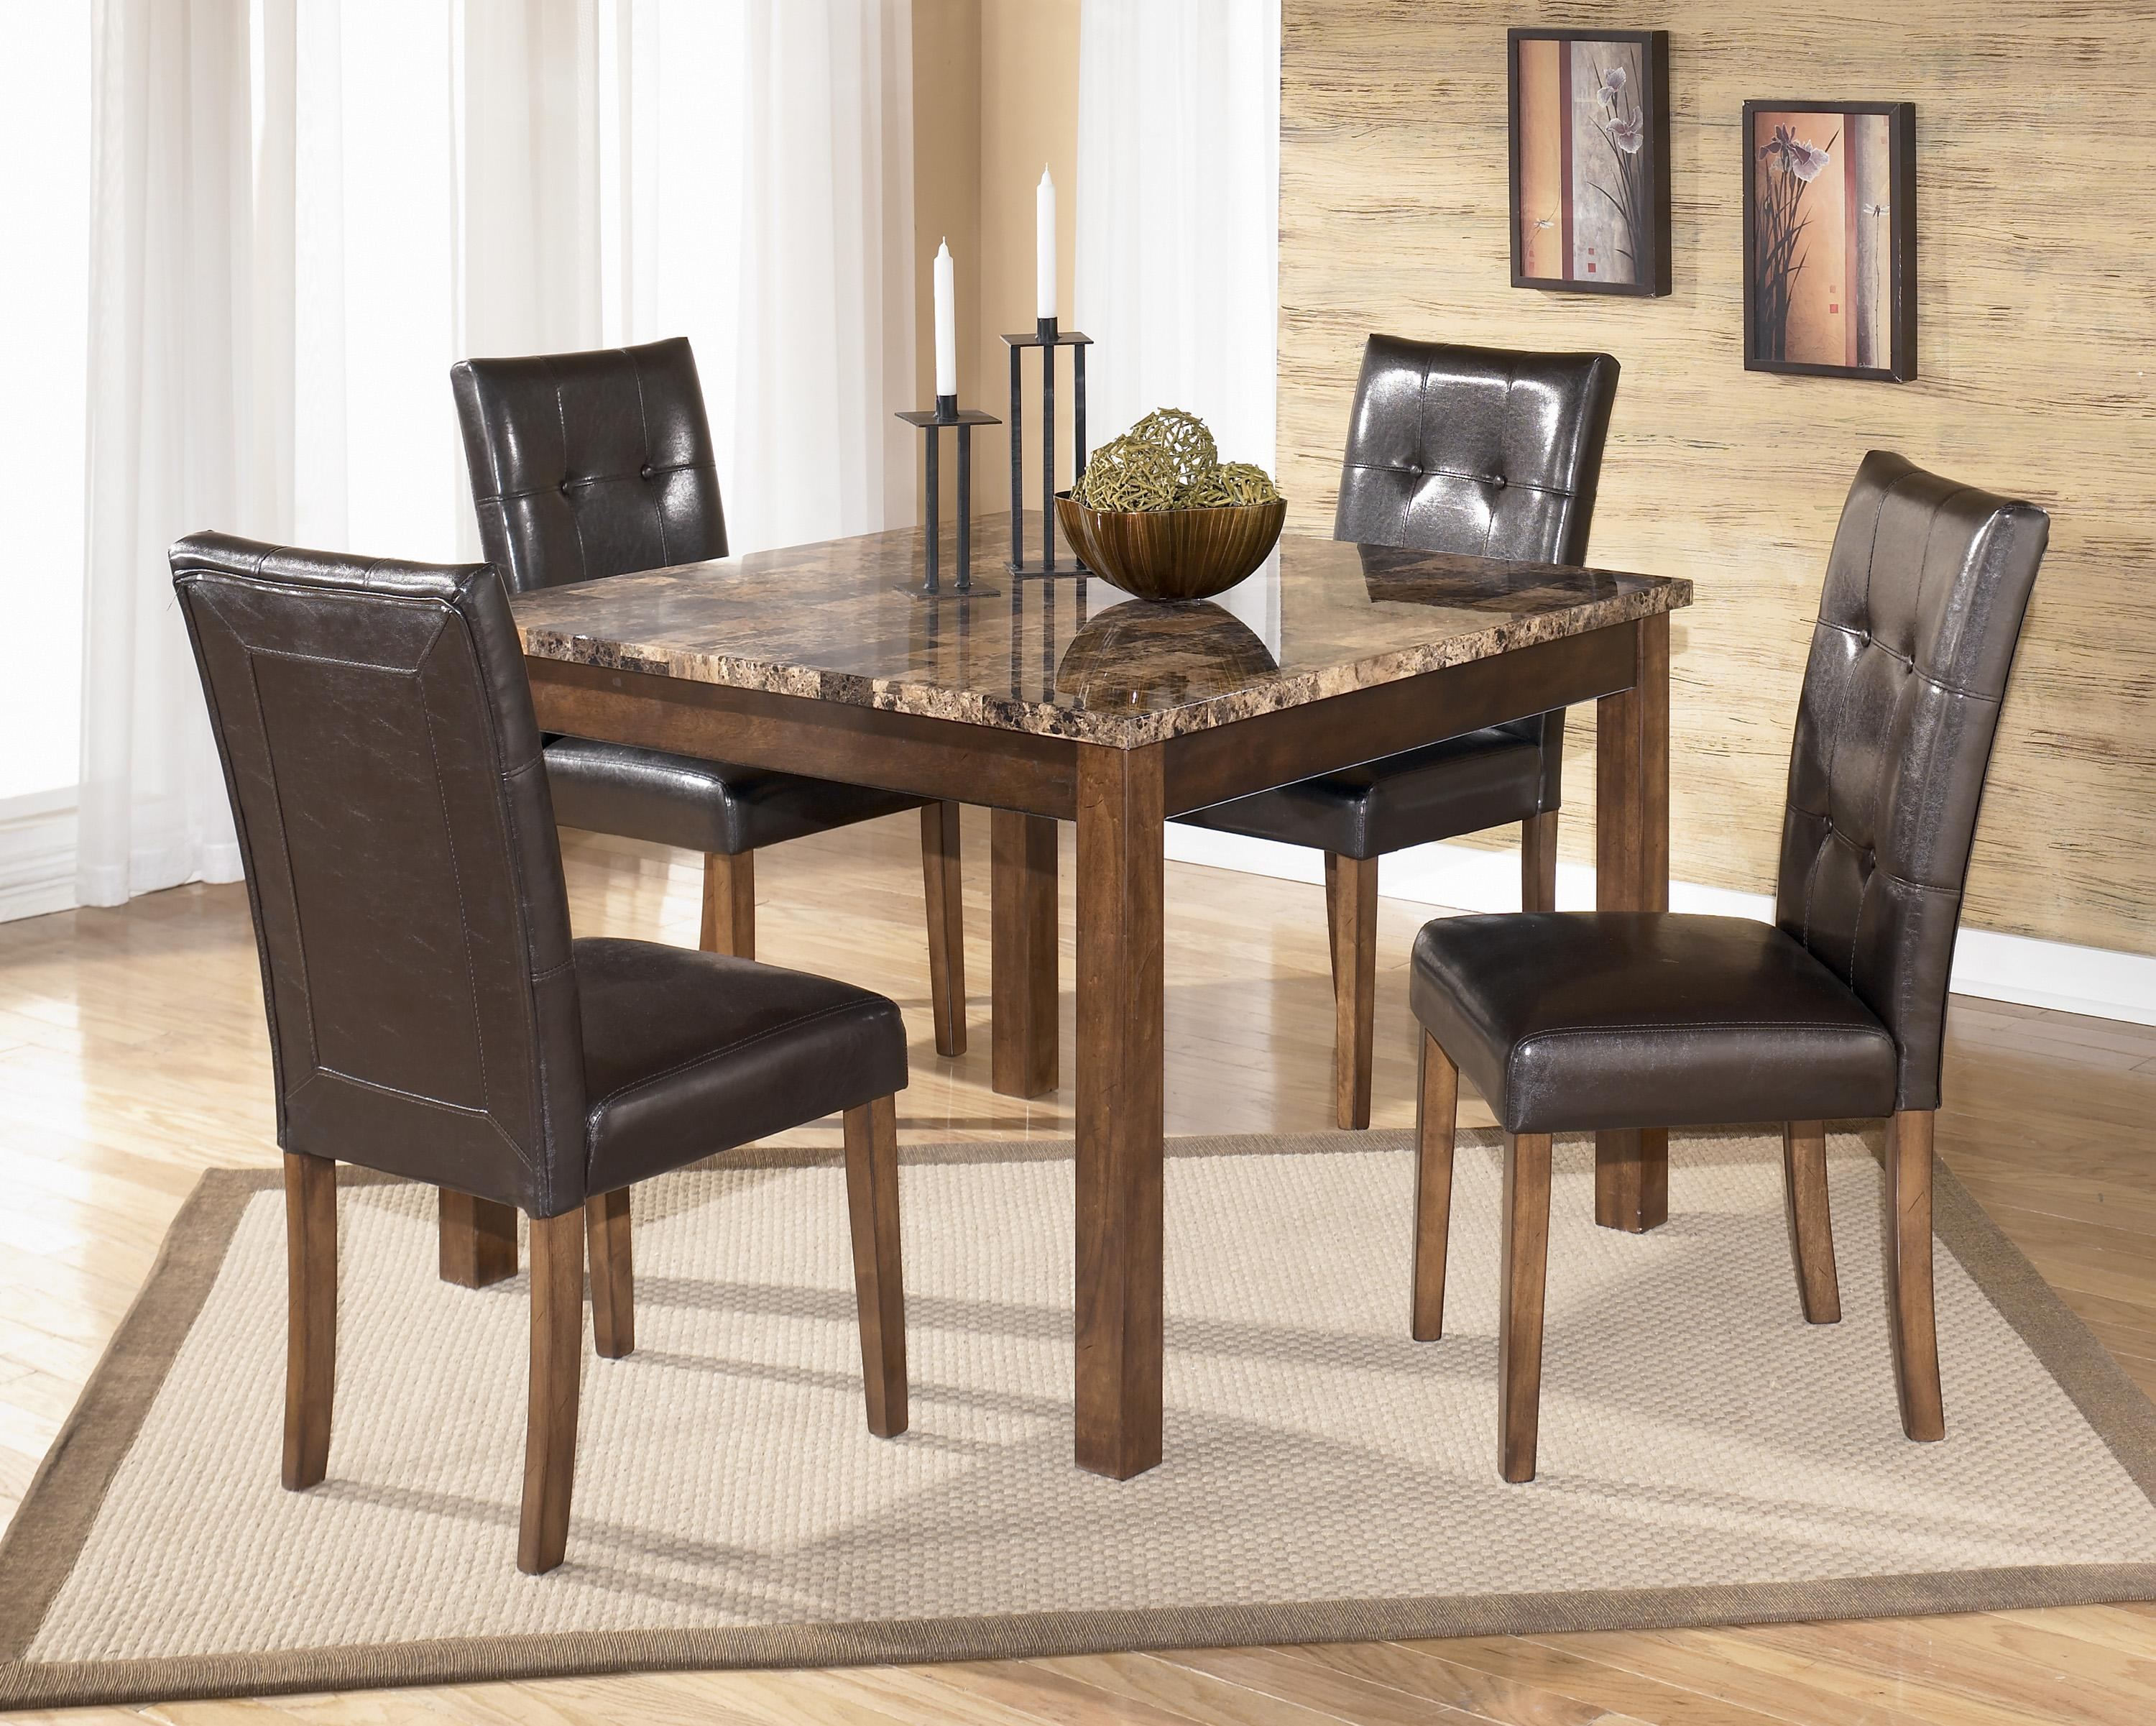 square kitchen table Signature Design by Ashley Furniture Theo 5 Piece Square Counter Height Table Set with Bar Stools Sam s Appliance Furniture Pub Table and Stool Set